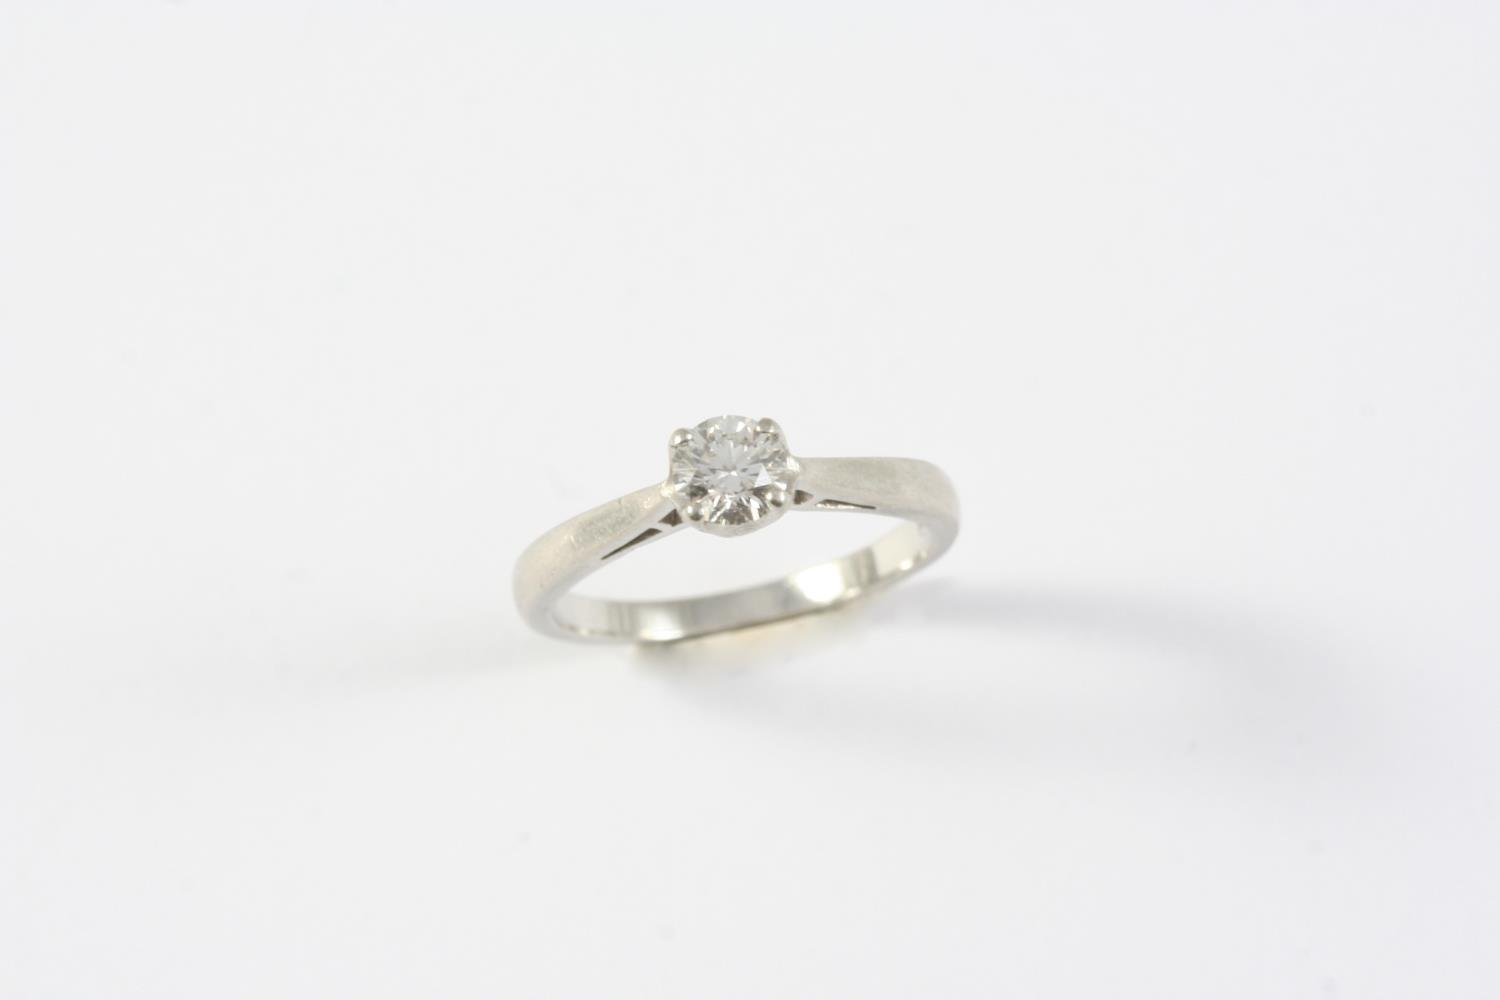 A DIAMOND SOLITAIRE RING the brilliant-cut diamond is claw set in platinum. Size J 1/2